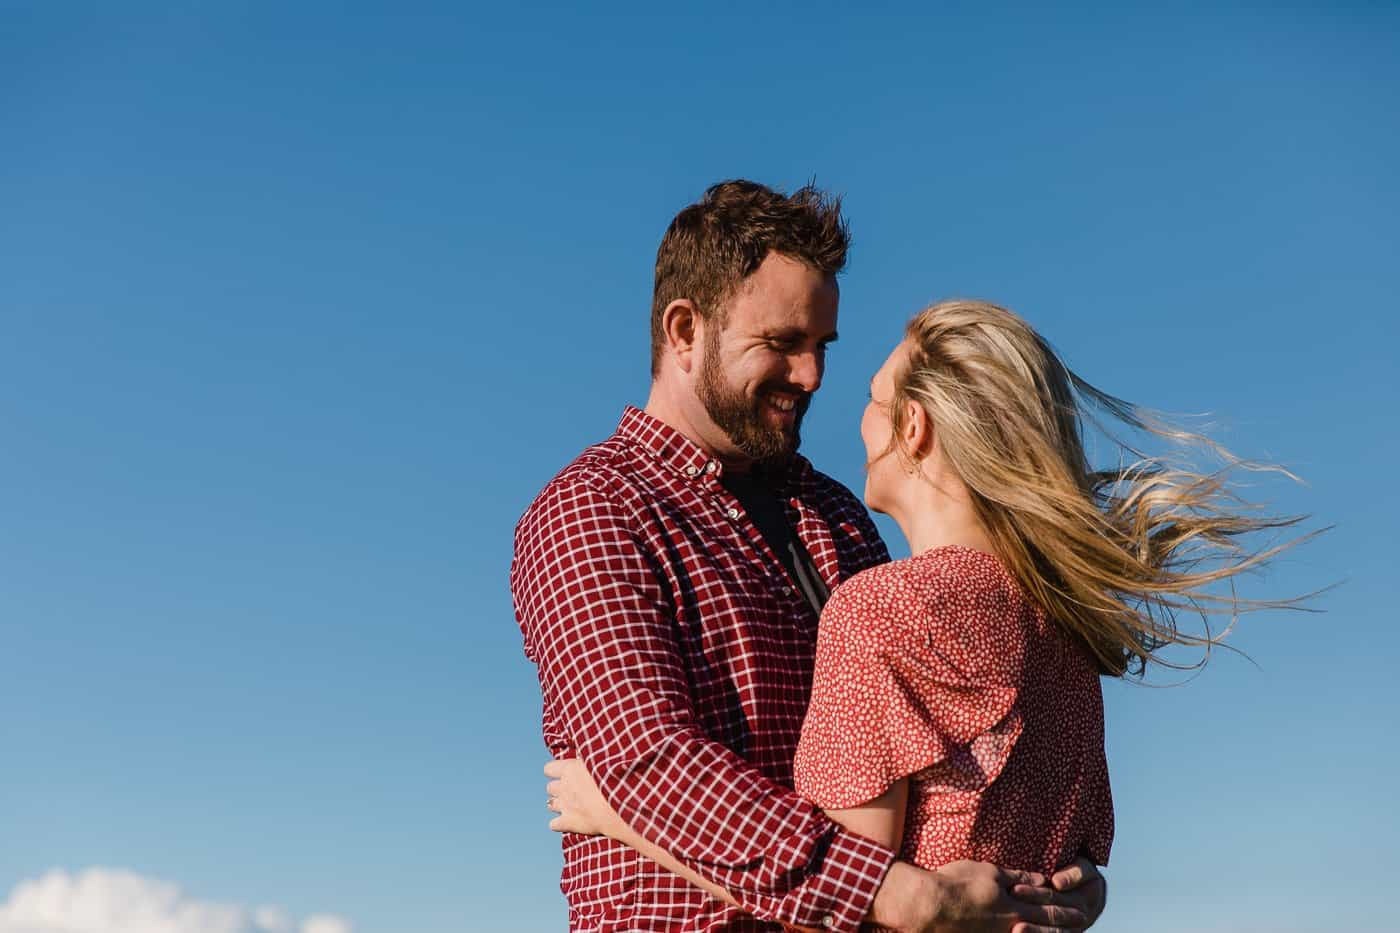 South Wales Engagement Photography 1